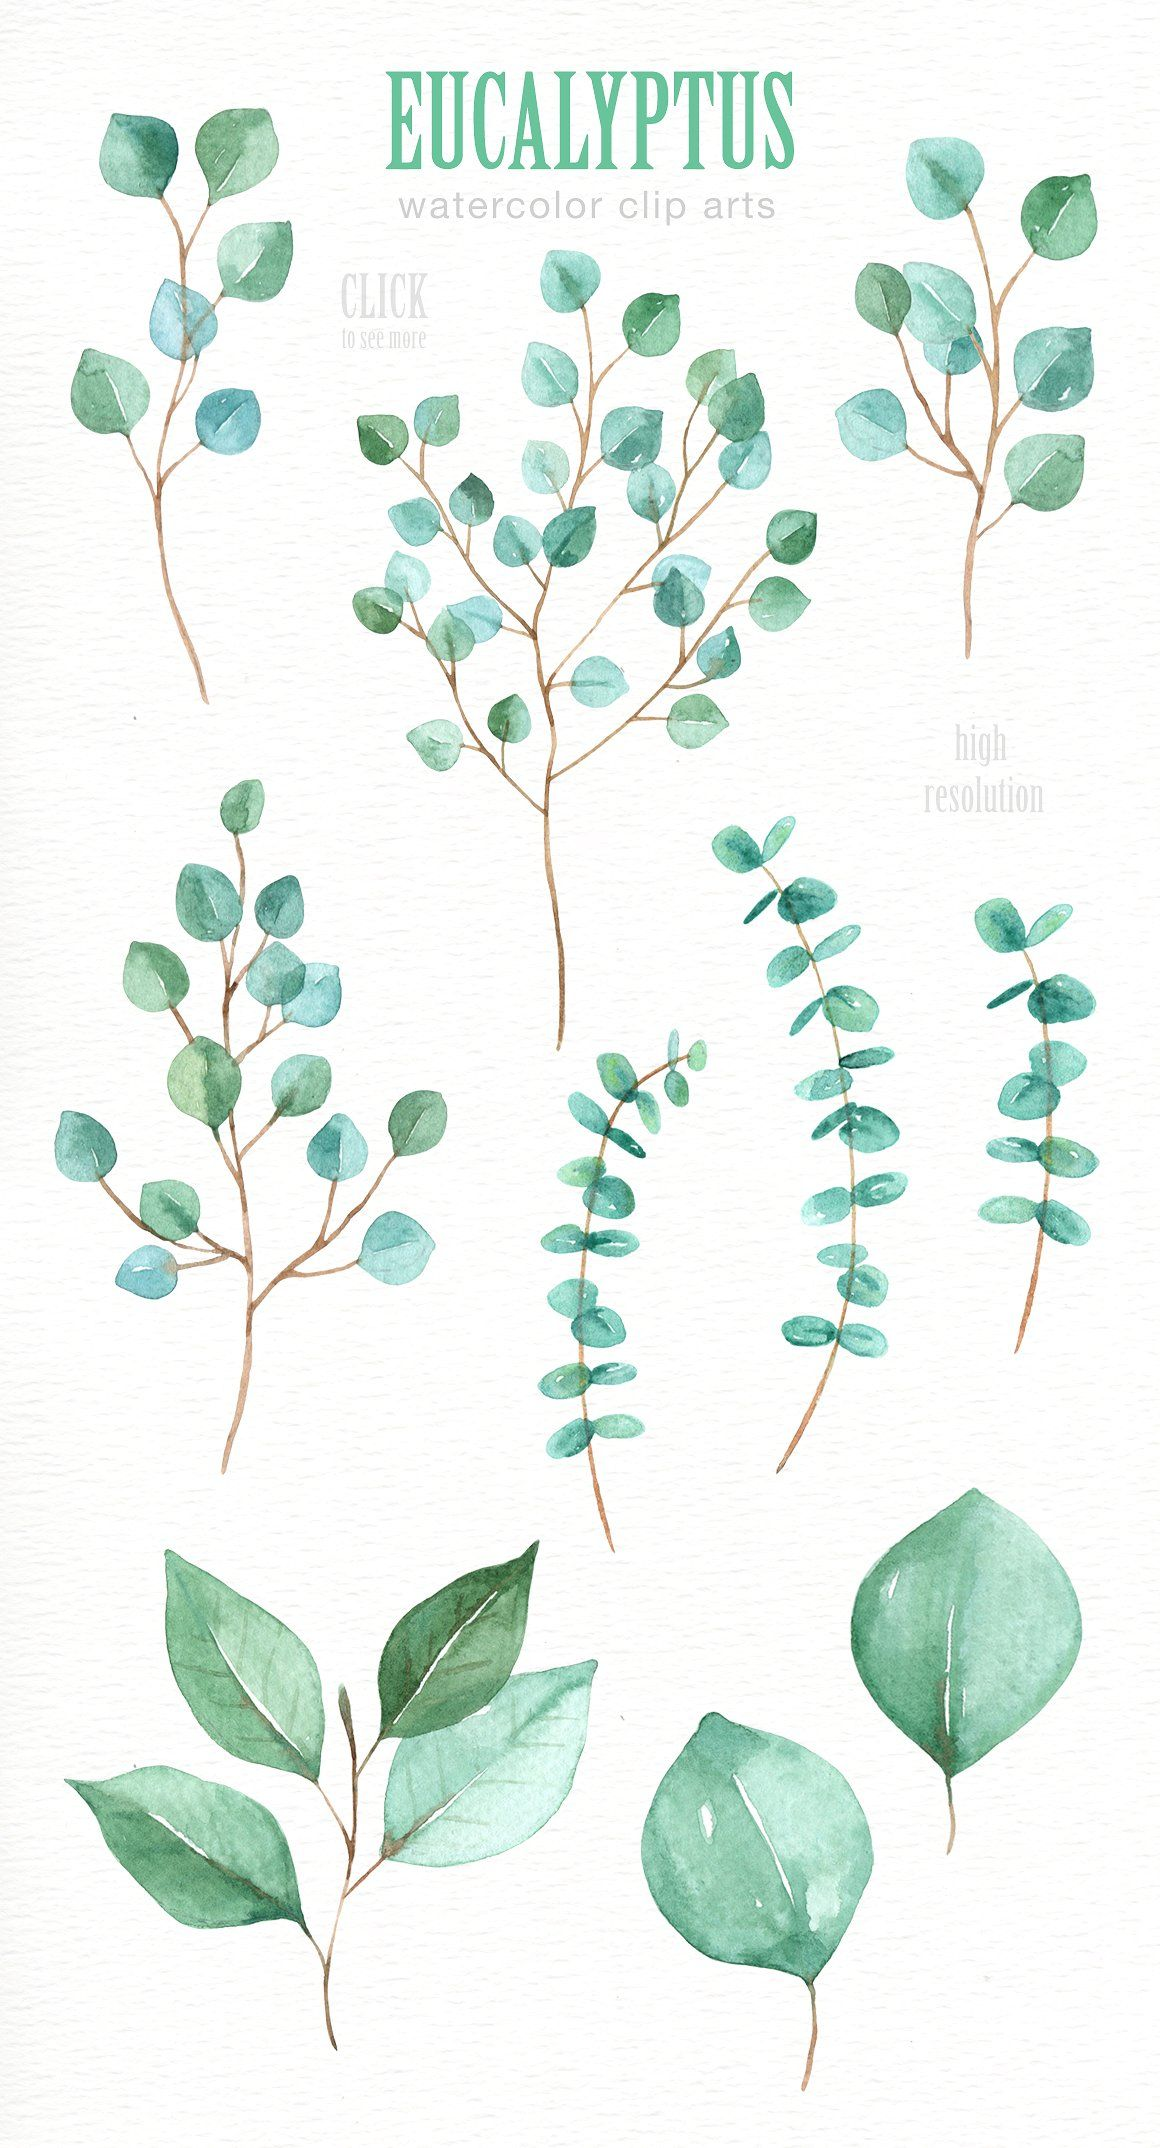 Eucalyptus Leaf Watercolor Clipart By Everysunsun On